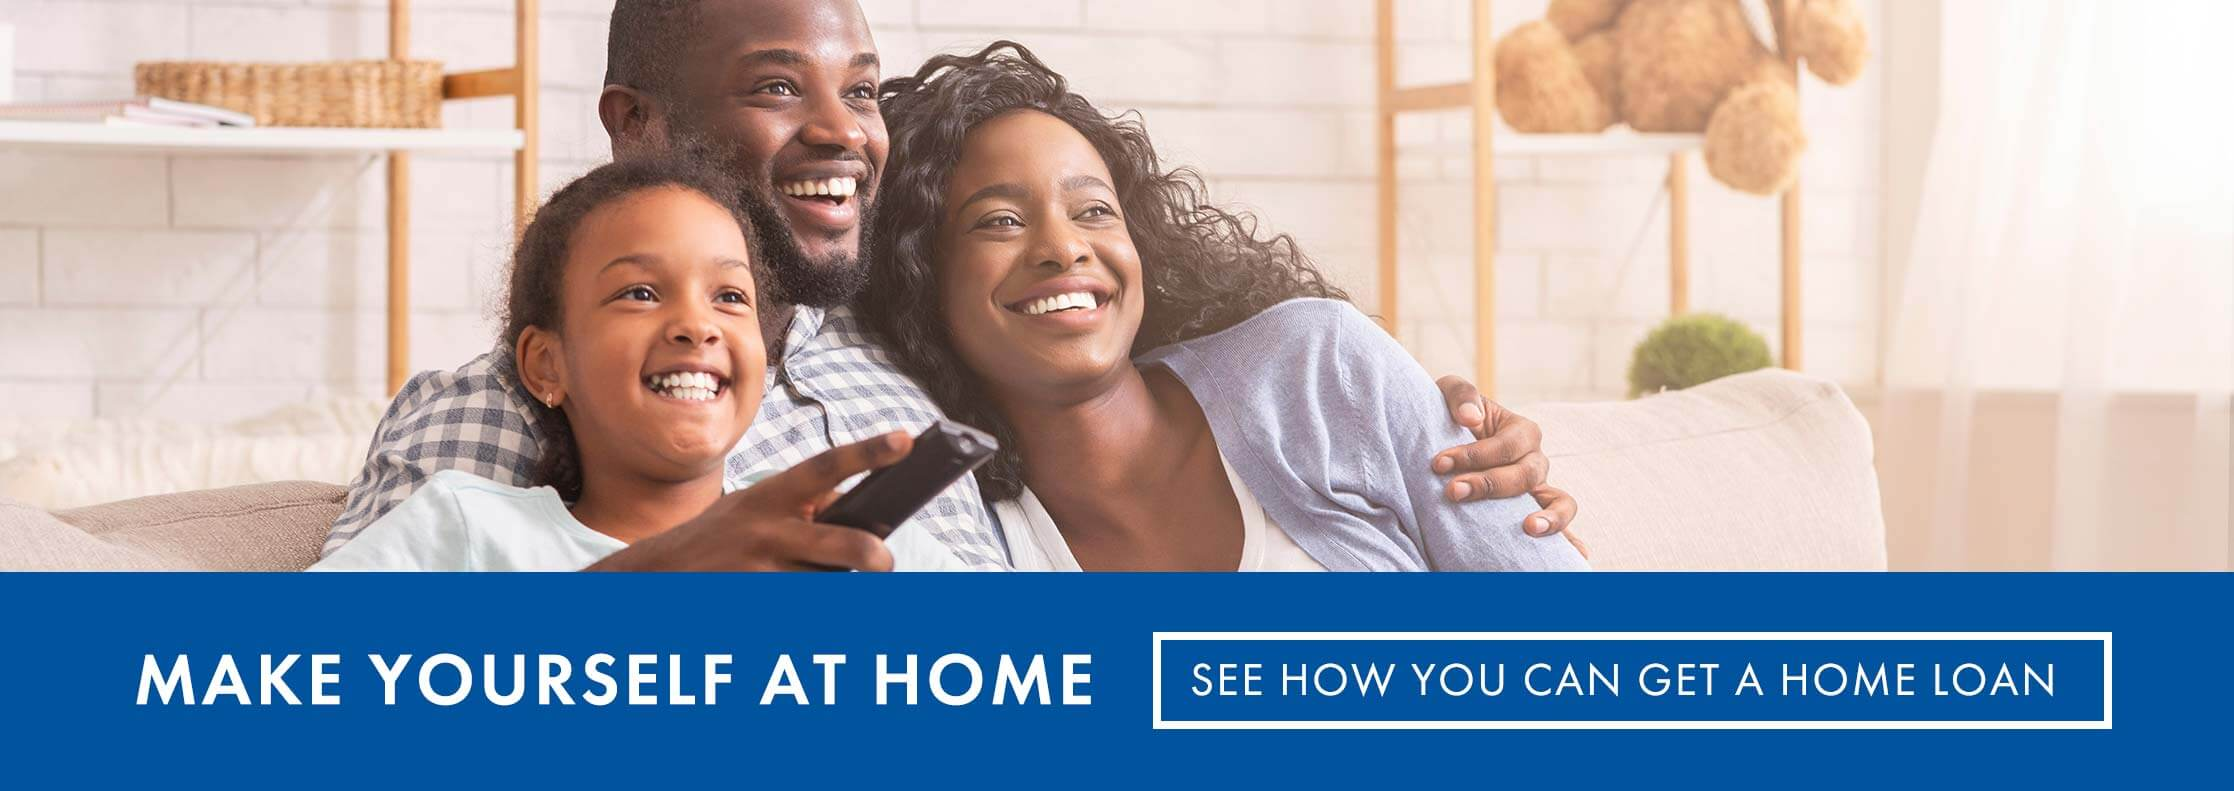 Make yourself at home: see how you can get a home loan